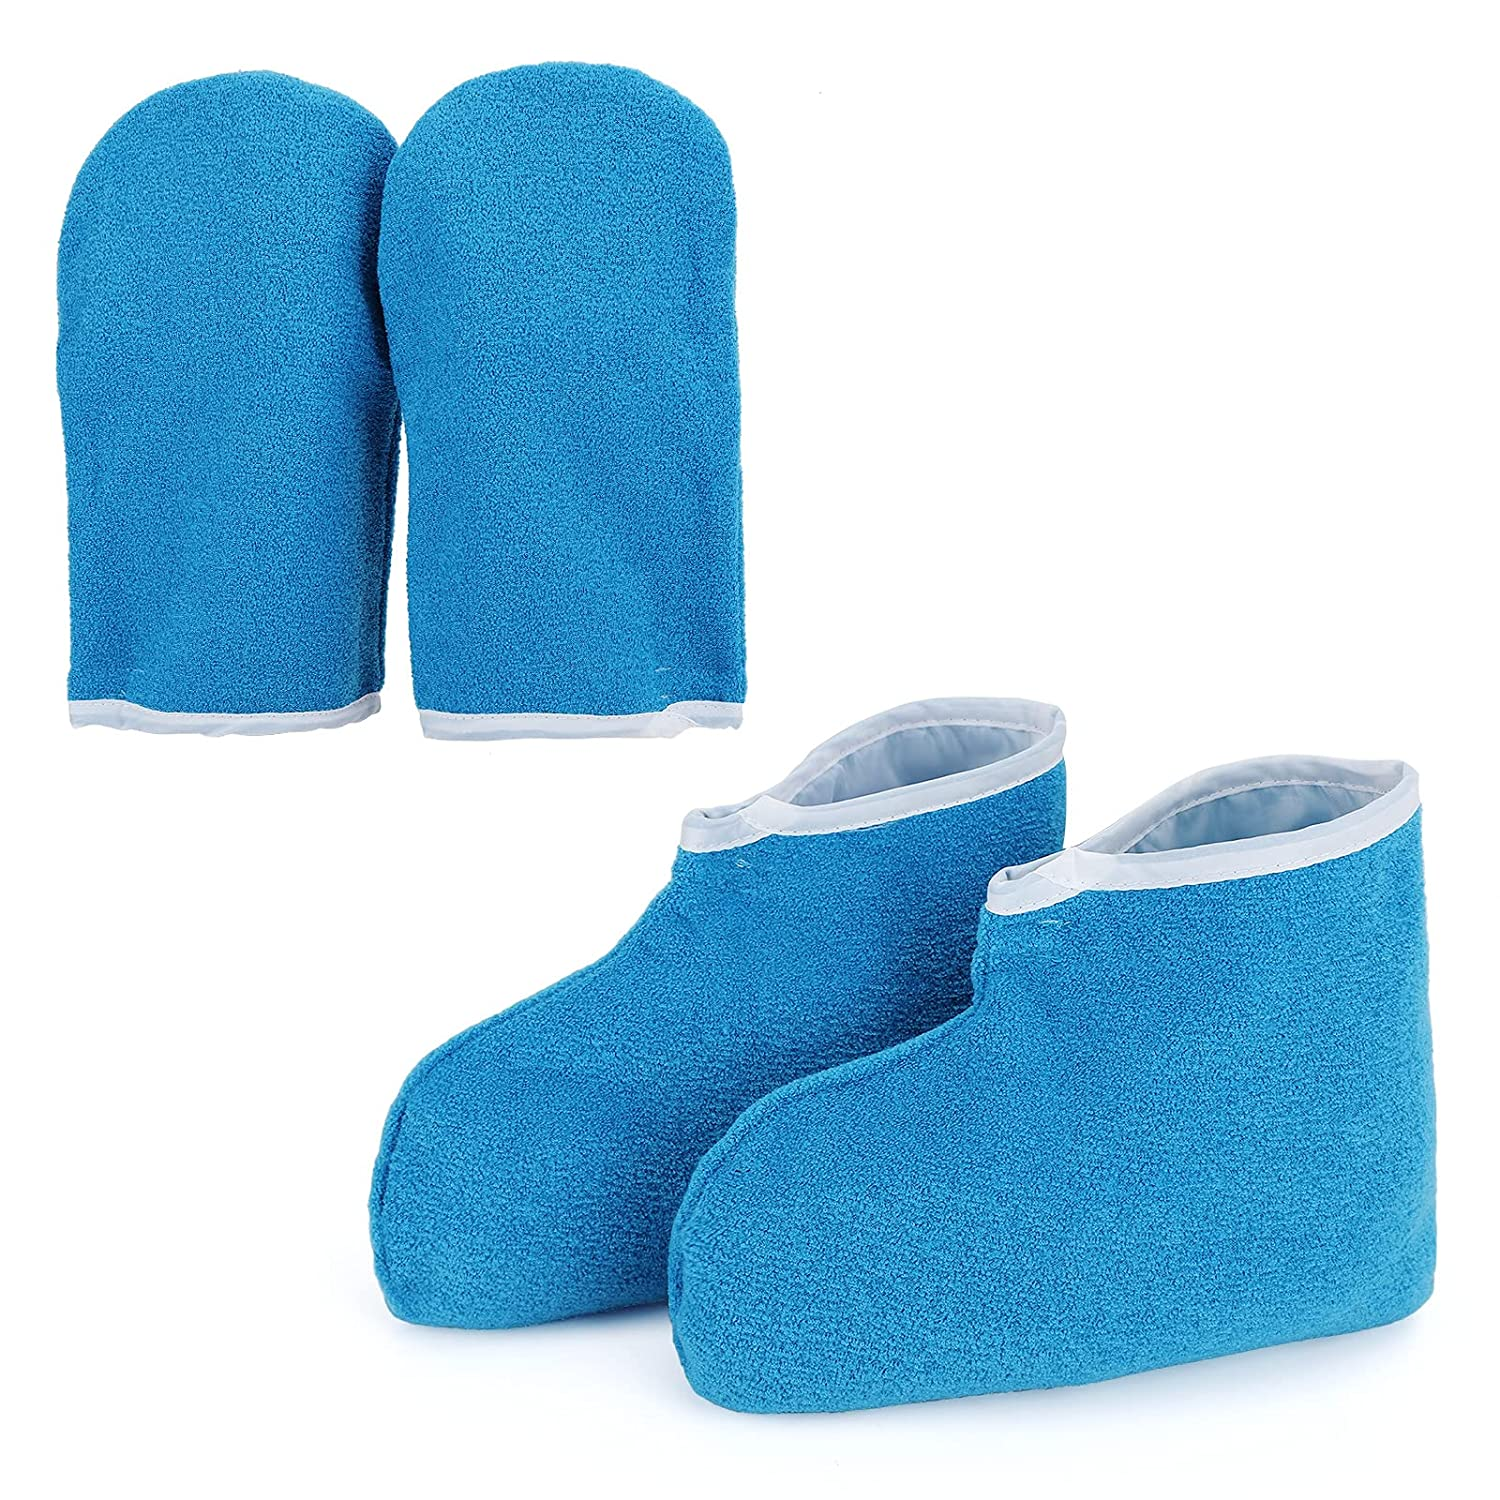 Paraffin Wax Gloves & Booties, Segbeauty Paraffin Heated SPA Mittens Foot Liners, Gloves & Socks for Hot Wax Hand Therapy Thermal Treatment Home DIY SPA Therabath Wax Warmer Paraffin Wax Machine Blue